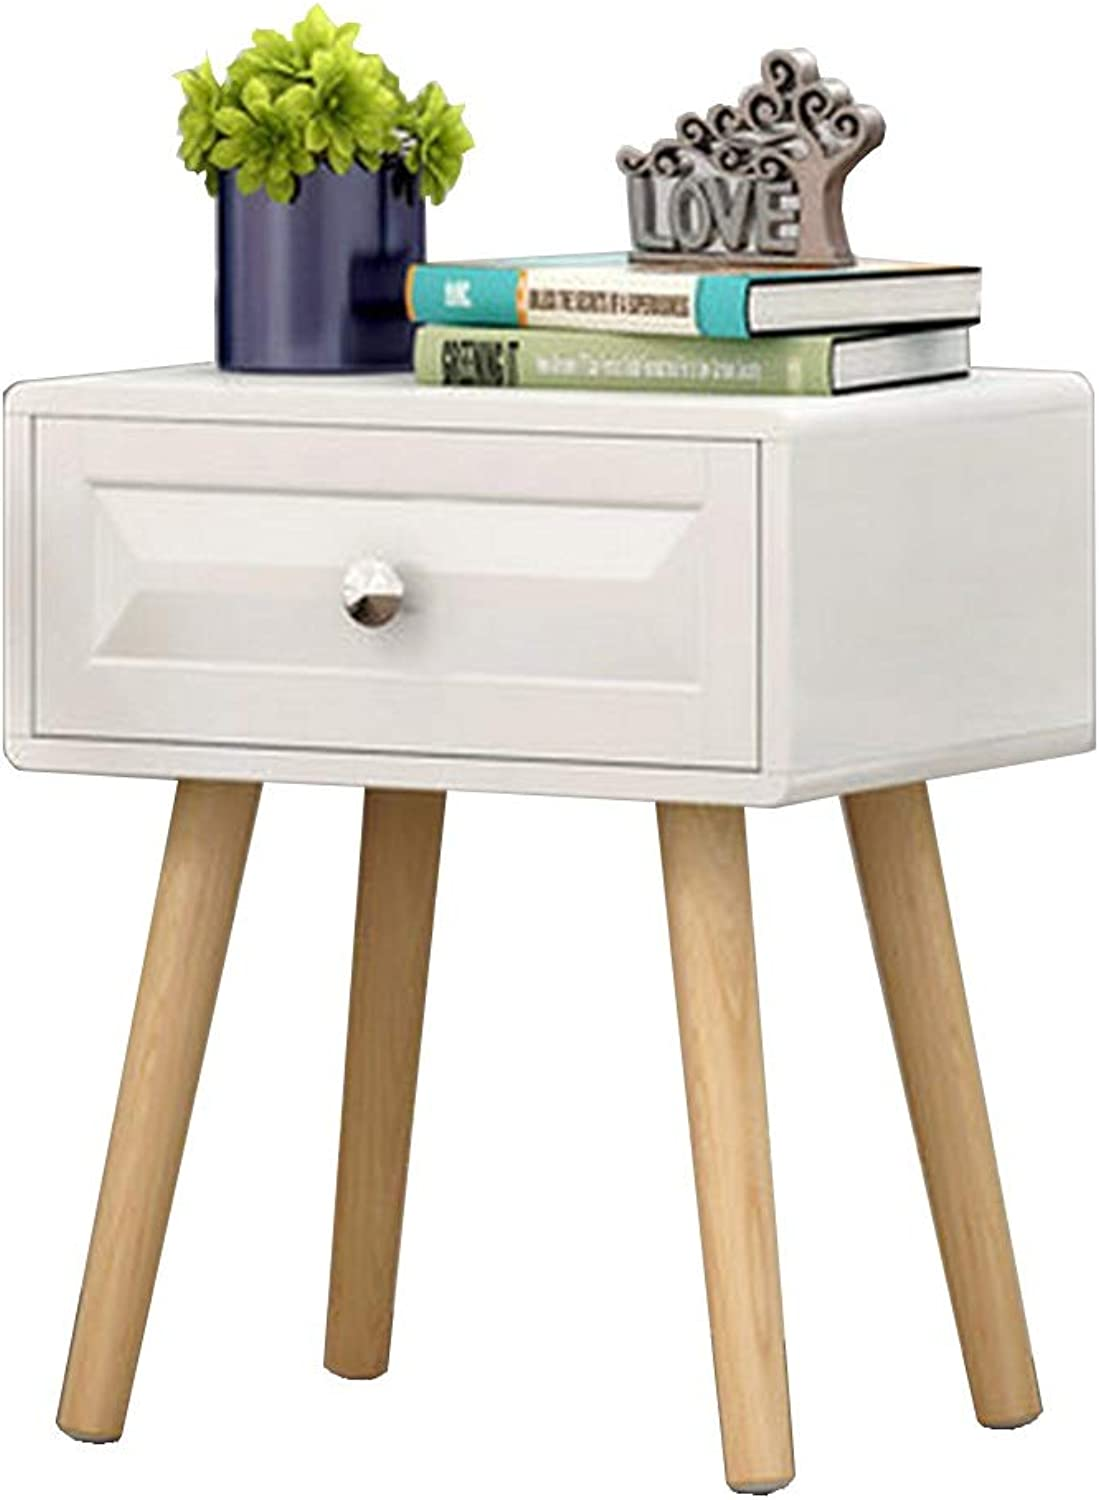 NAN Bedside Table  Nightstand  Display Shelf  End Table -Saving Space, Indoor Storage Furniture (with Drawers) Folding Tables (Size   40  30  48cm)